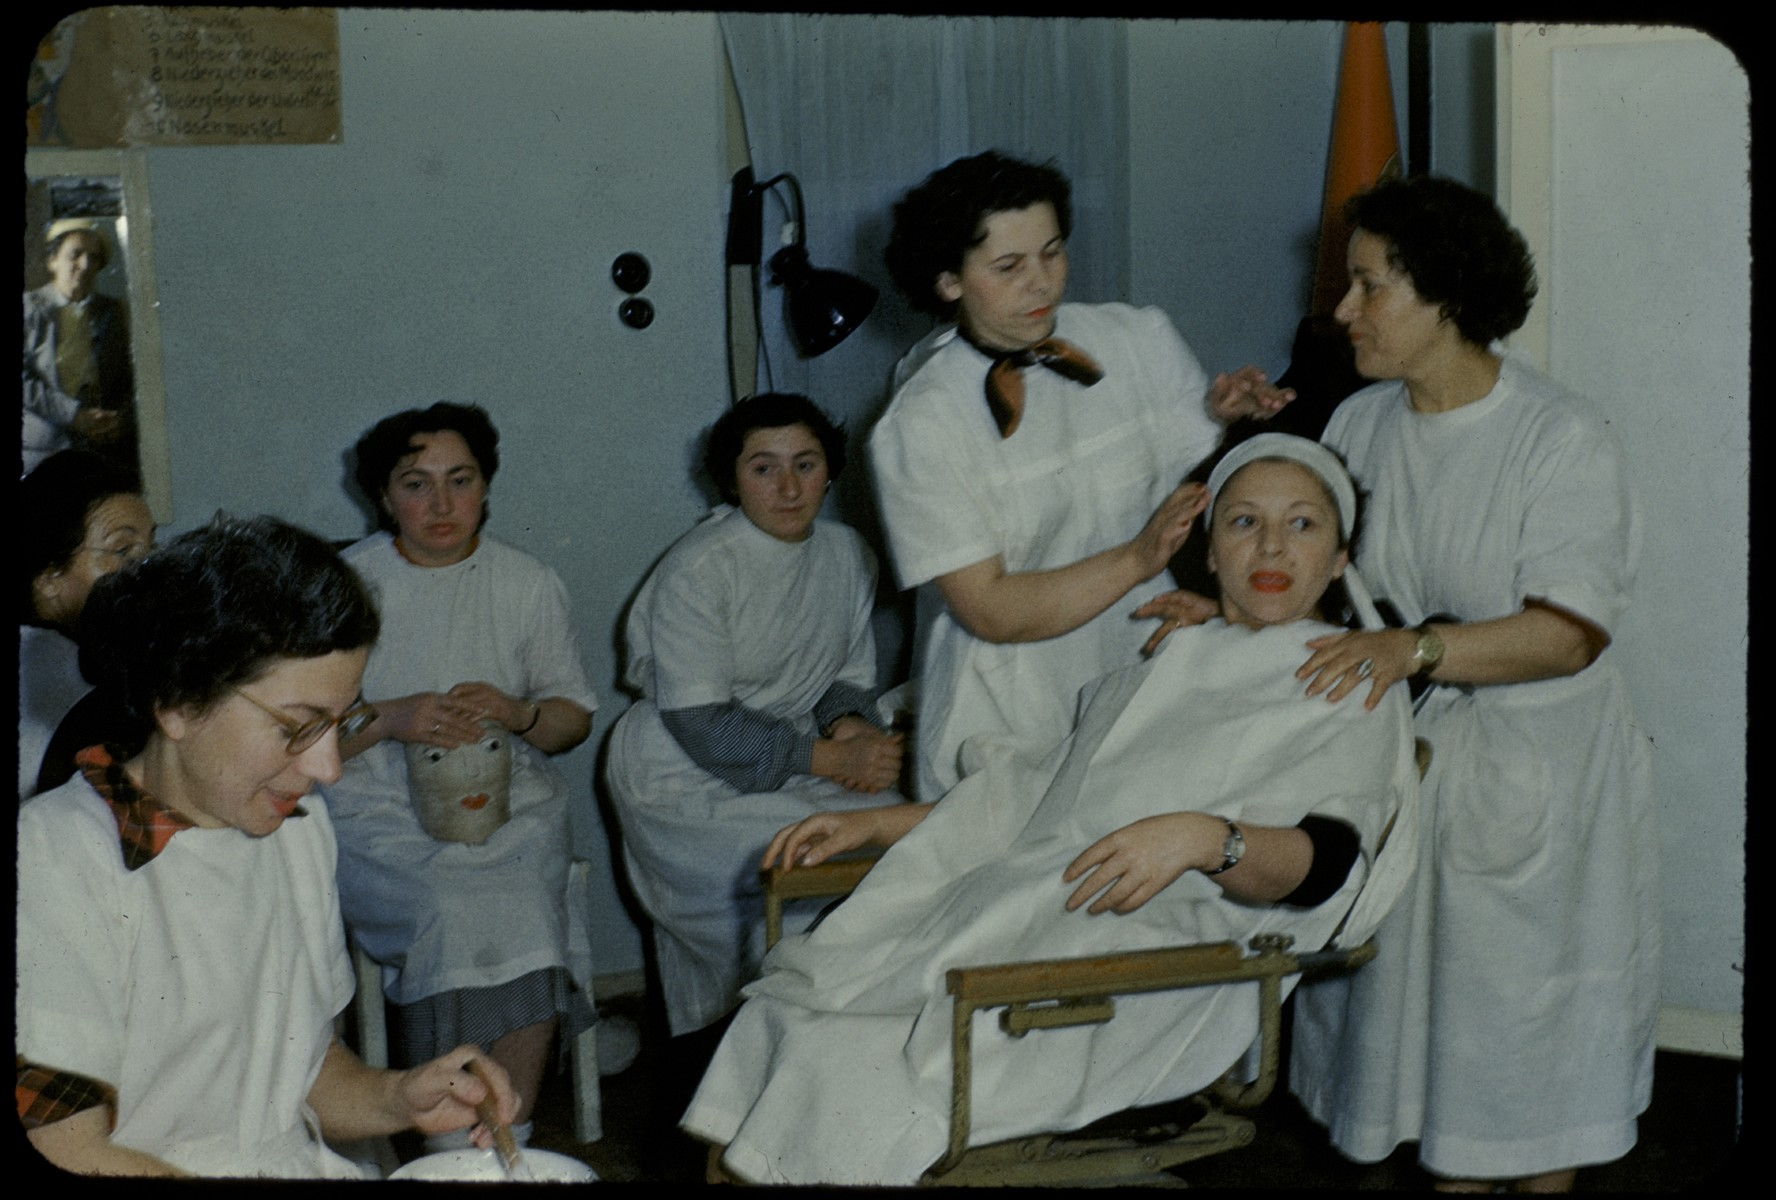 Women learn to become beauticians at an ORT school in the Foehrenwald displaced persons camp.